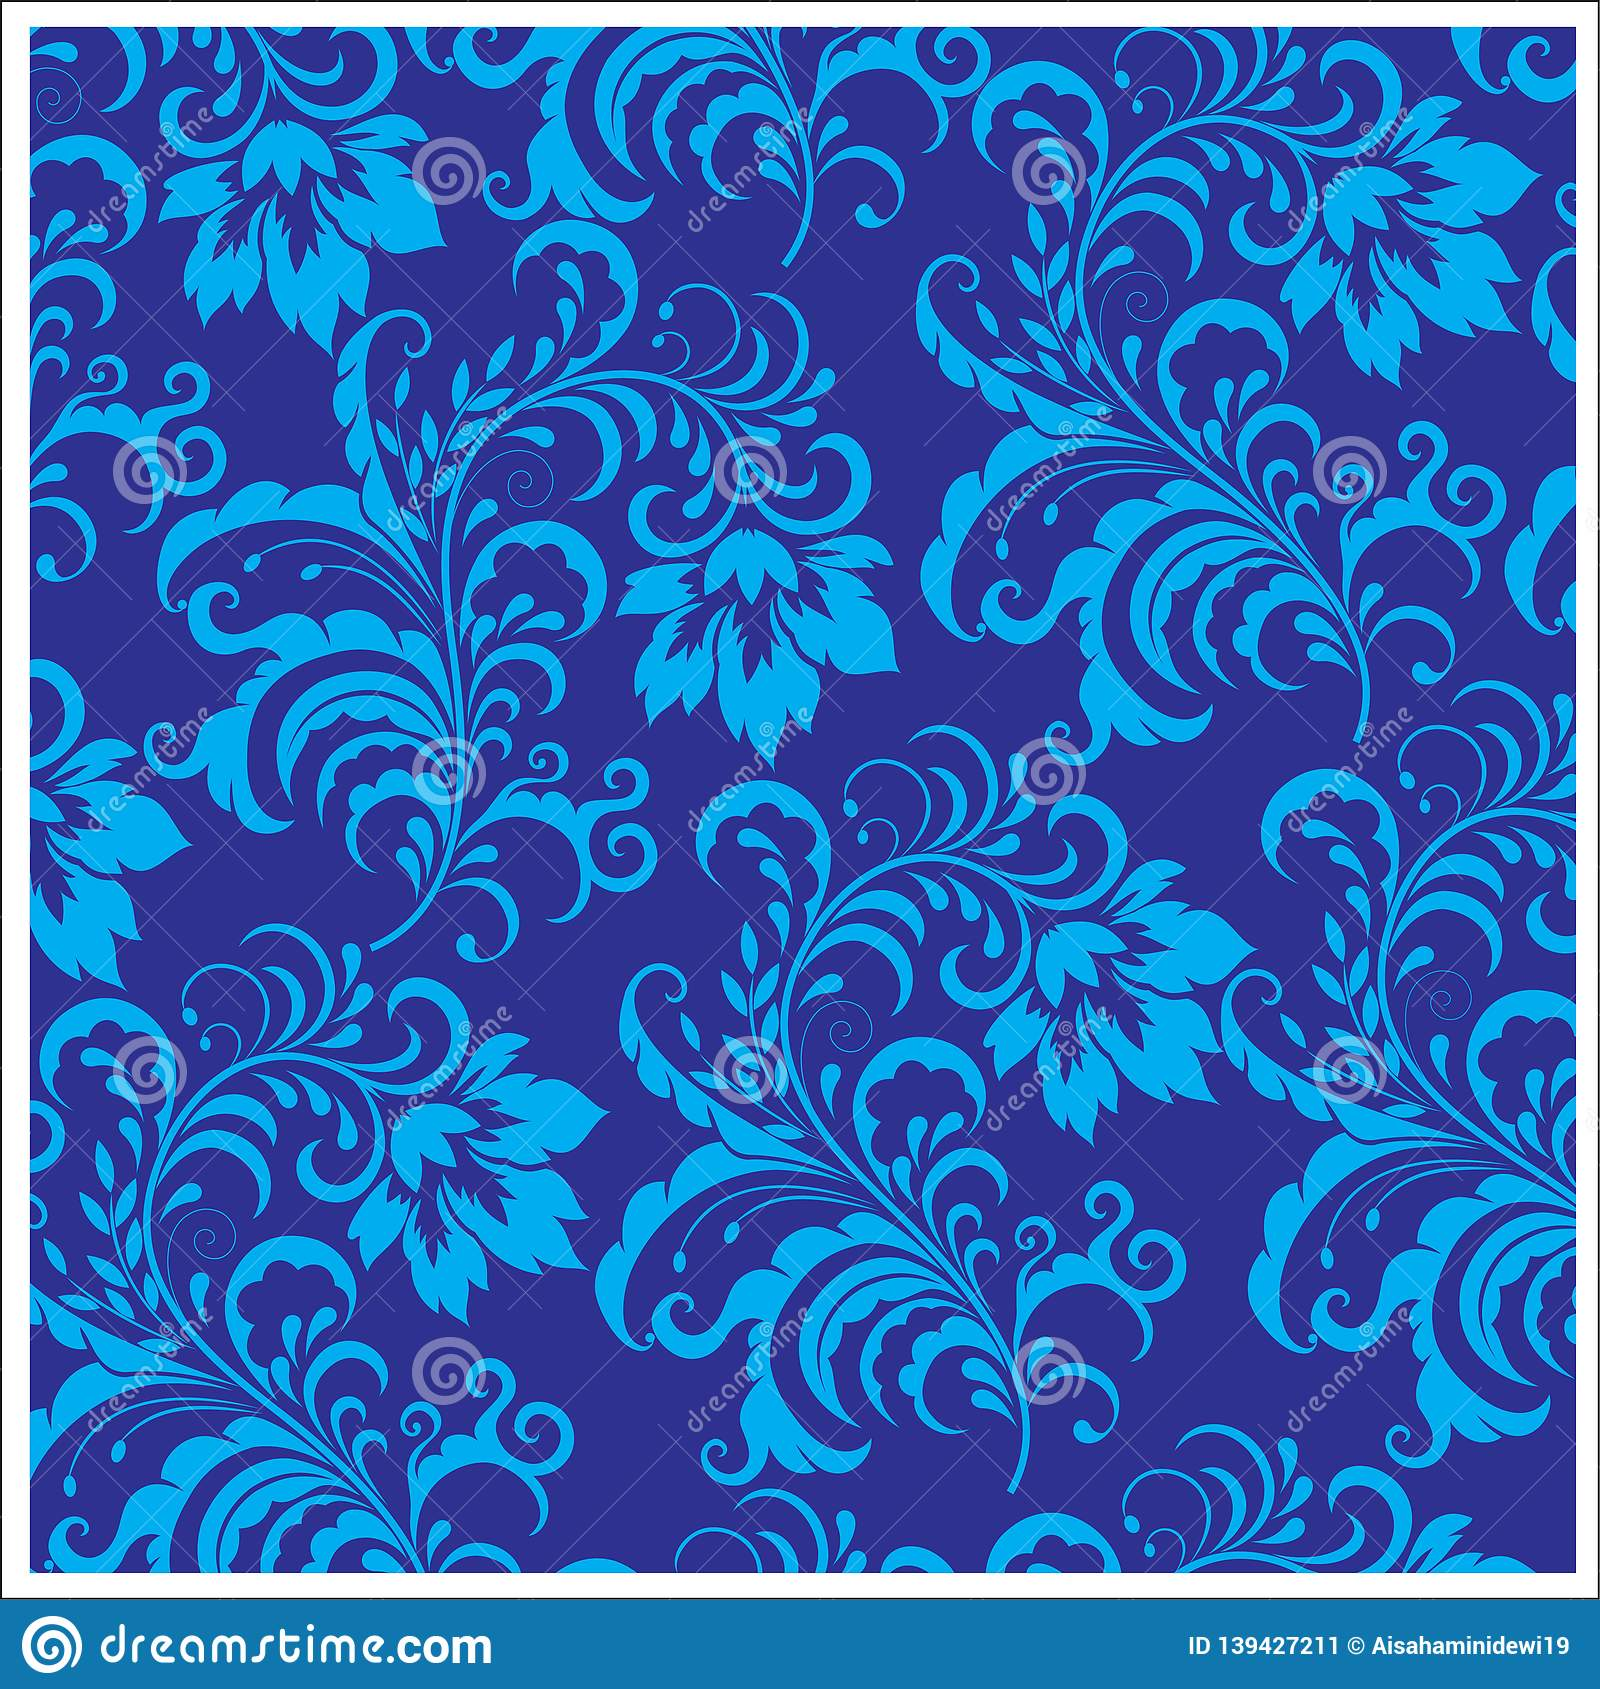 Textile, Pattern, Design, Flower, Background, Batik